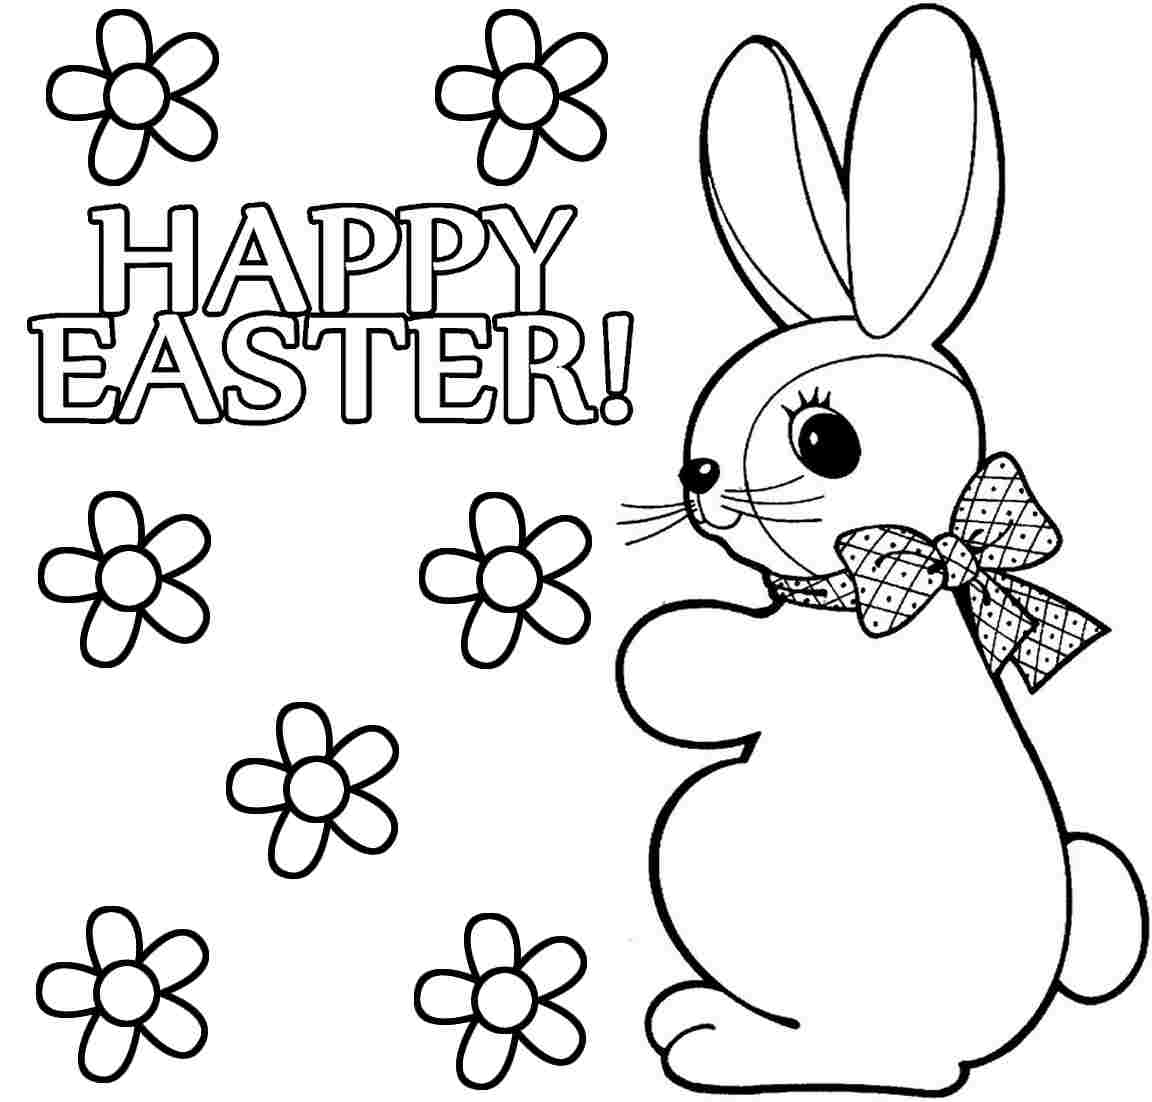 1152x1102 Trend Bunny Print Out Coloring Pages Easter Bookmontenegro Me